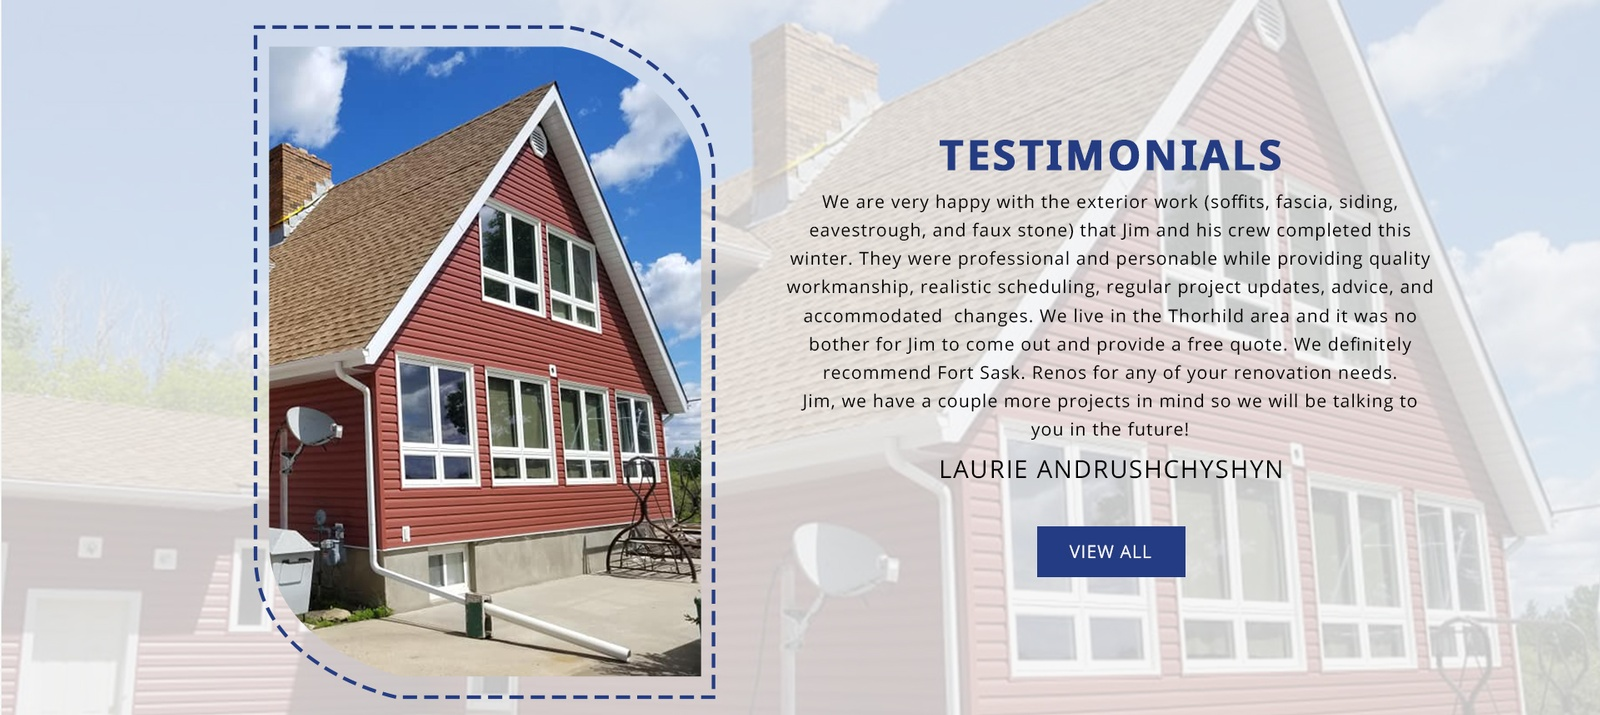 Renovation Services Testimonials Fort Saskatchewan by Fort Sask Reno Inc.